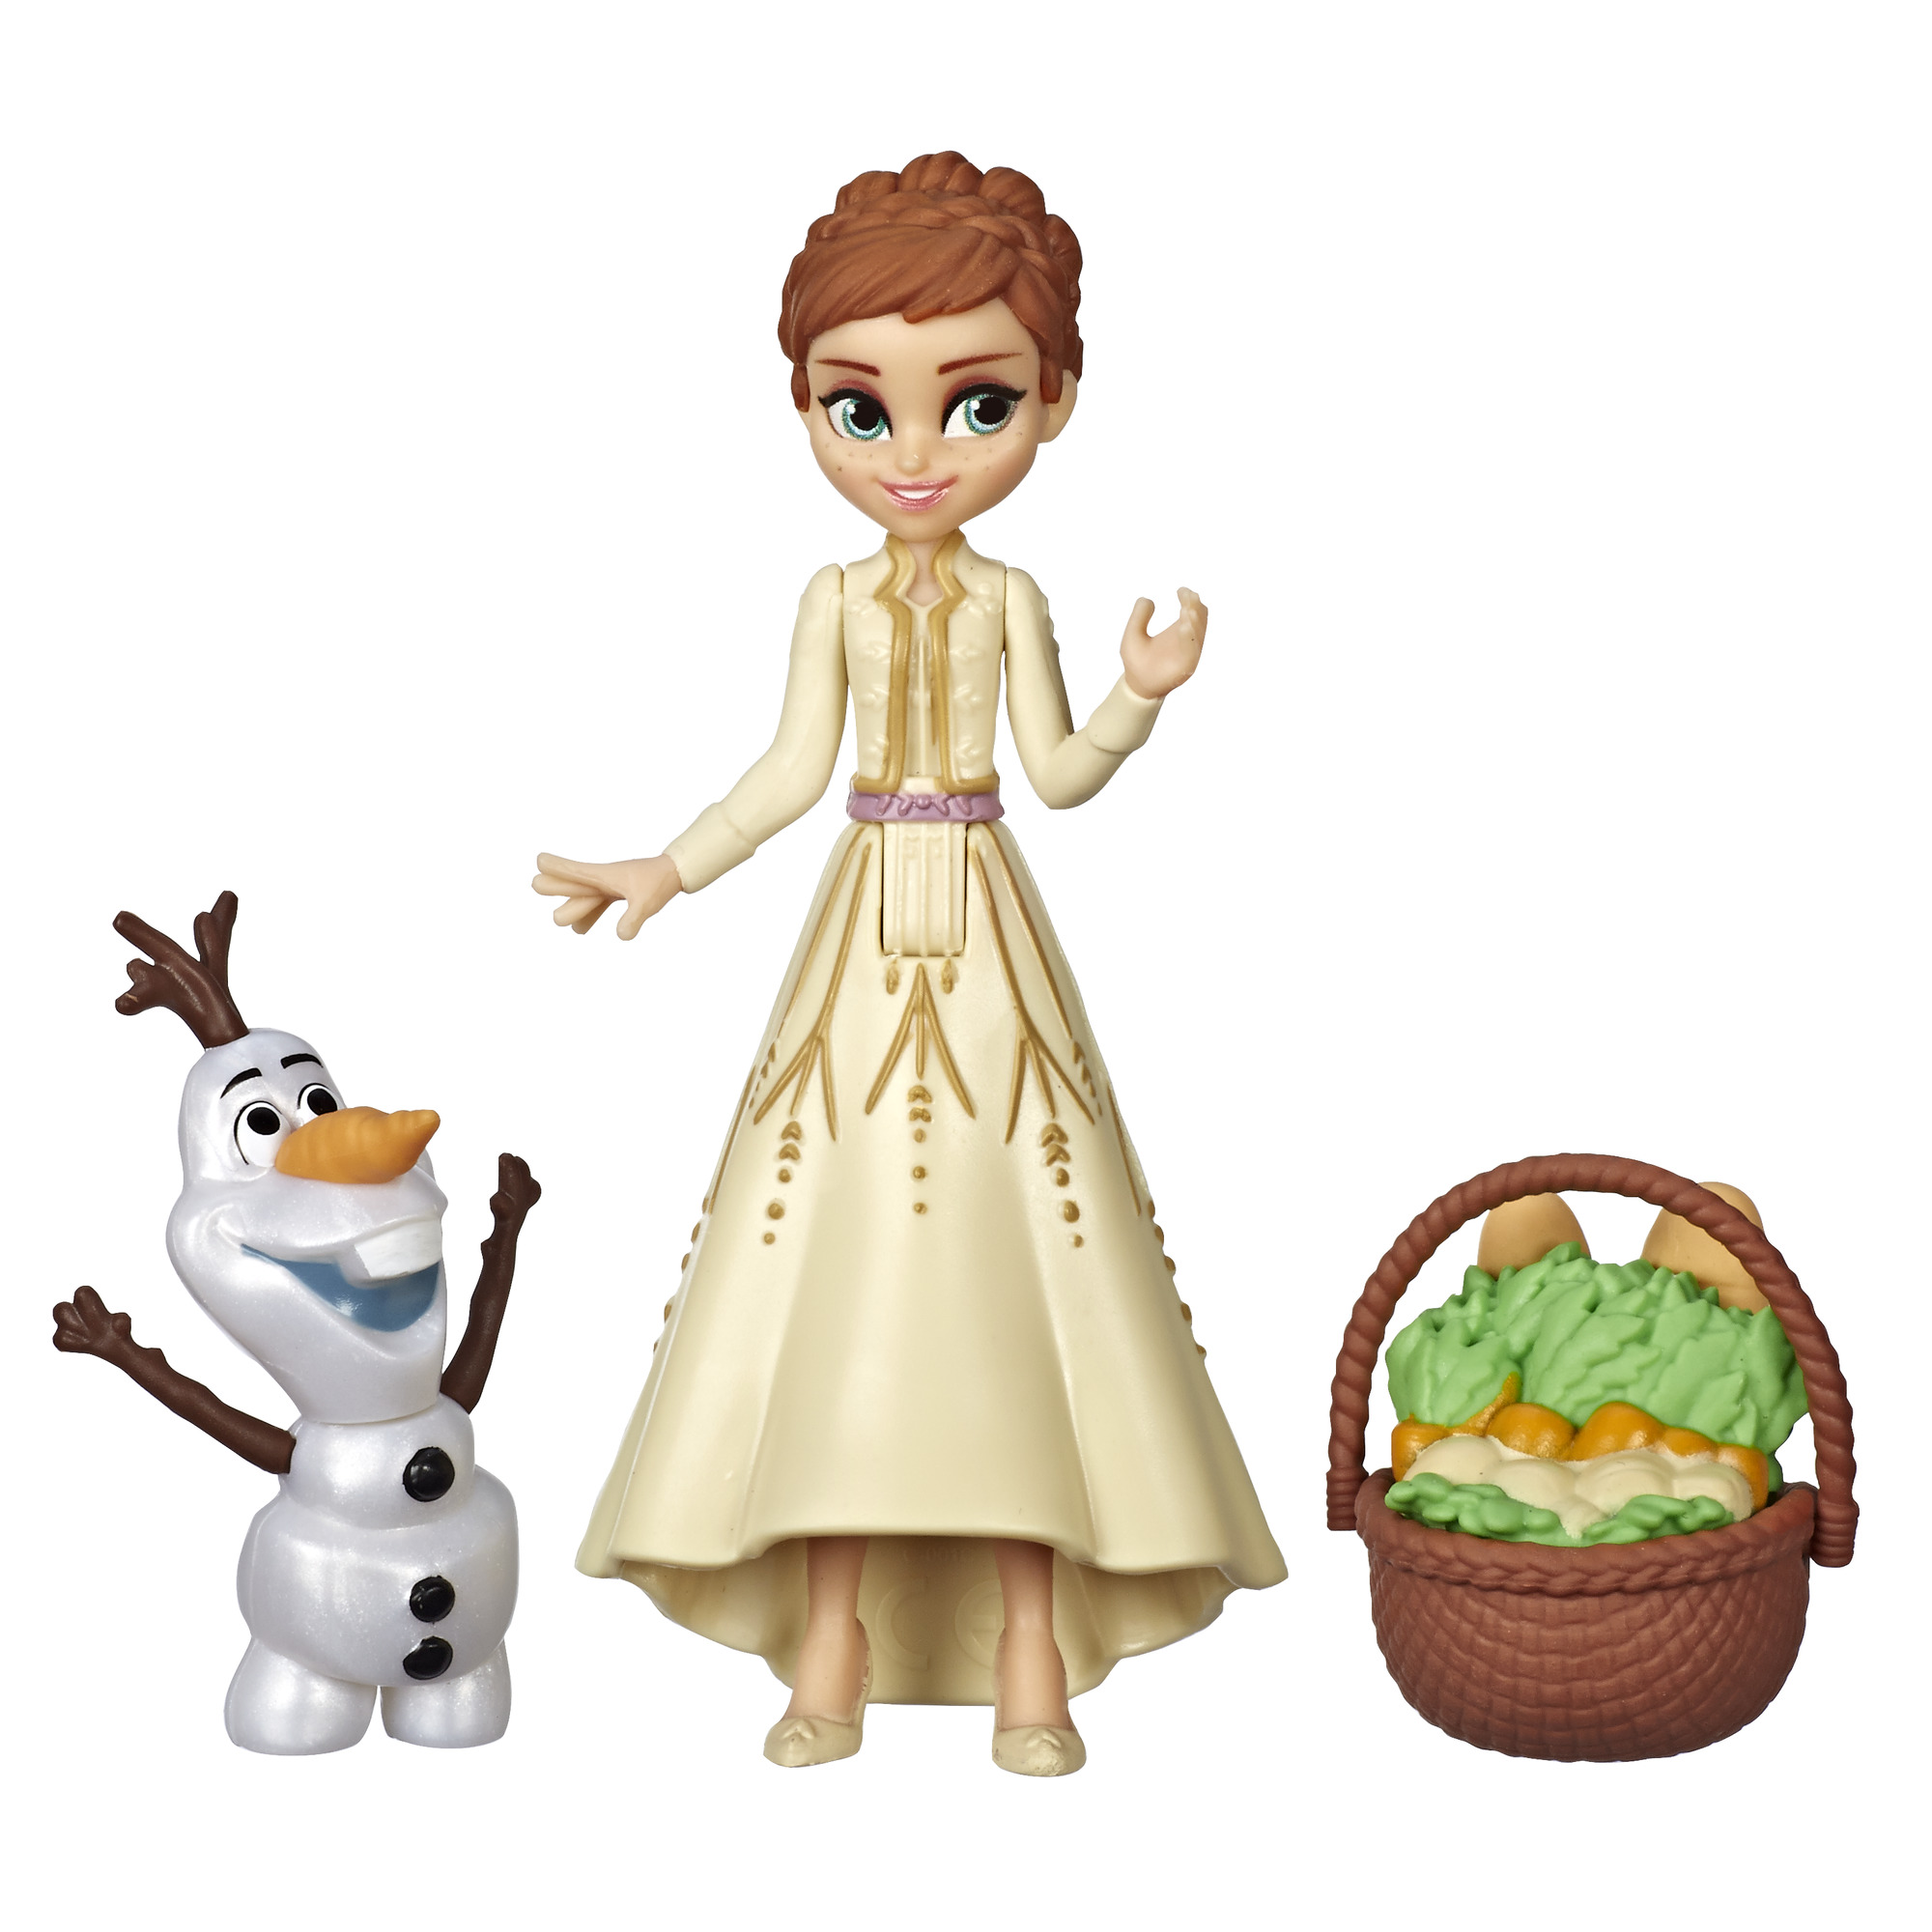 DIsney Frozen 2 Anna and Olaf Small Doll Playset with Travel Basket Accessory (Walmart)